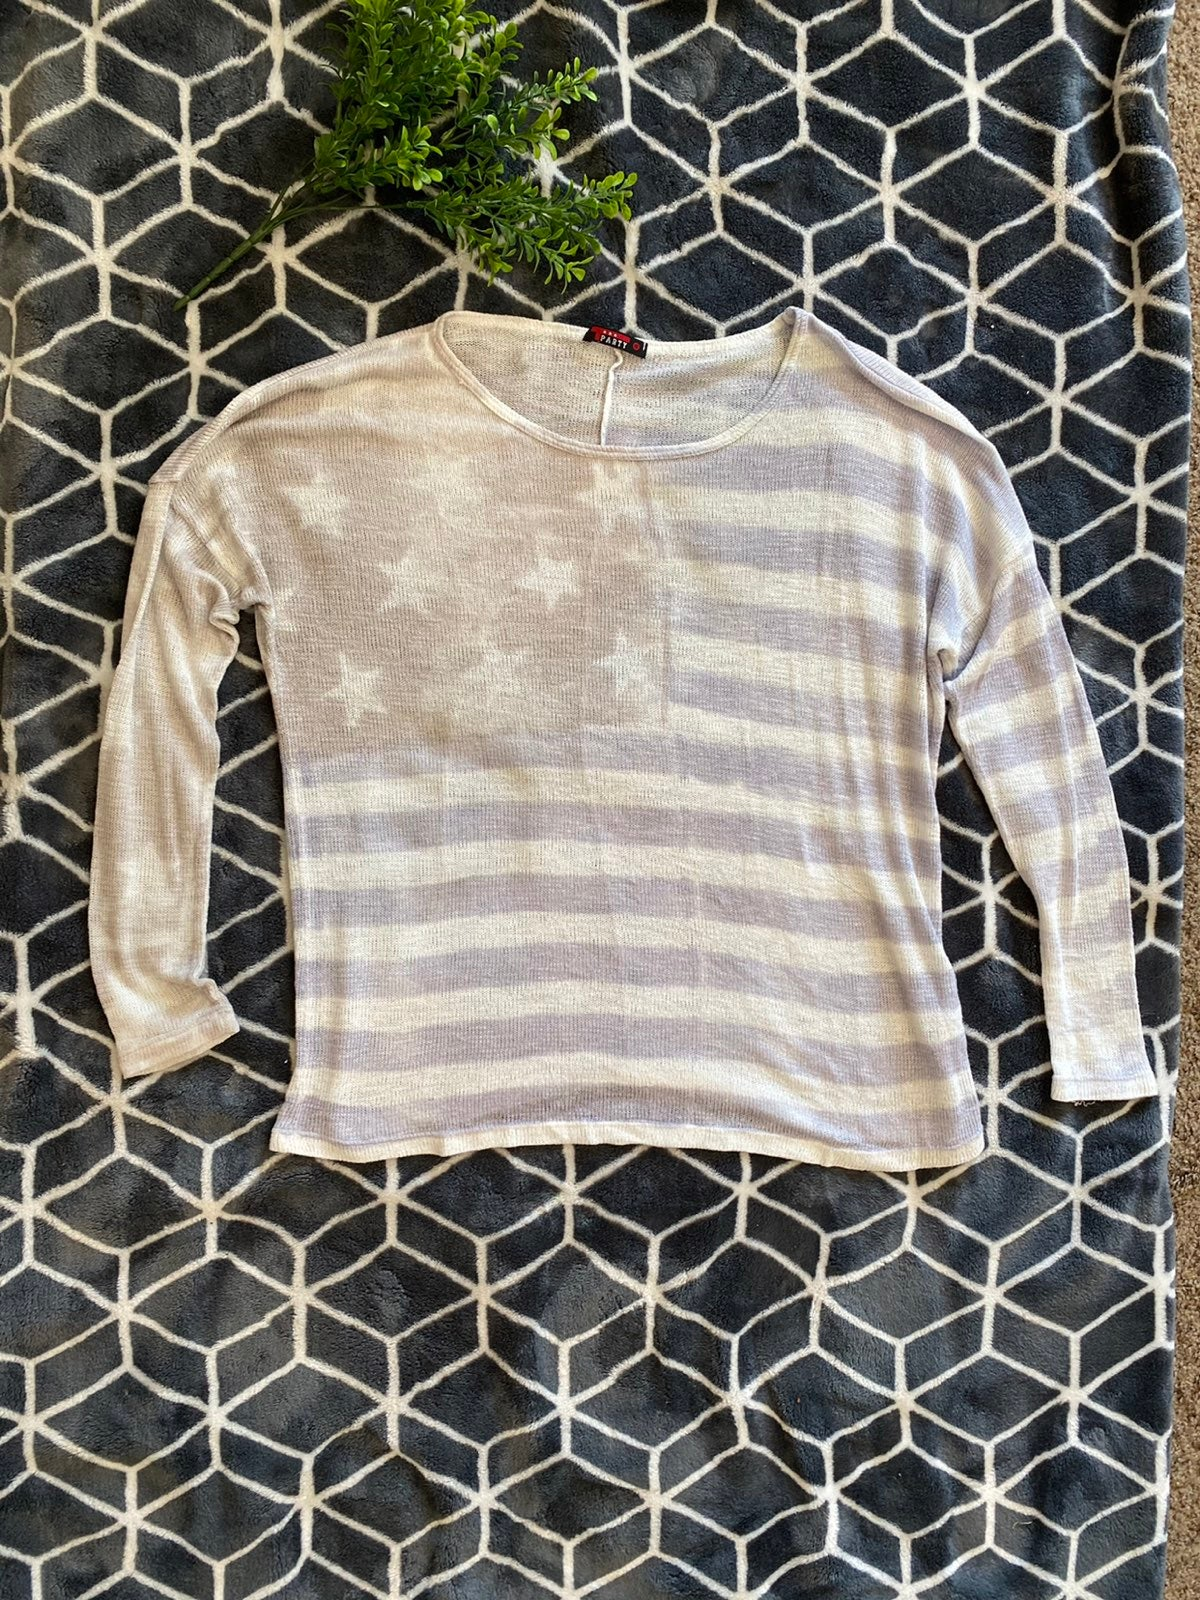 T Party americana sweater top